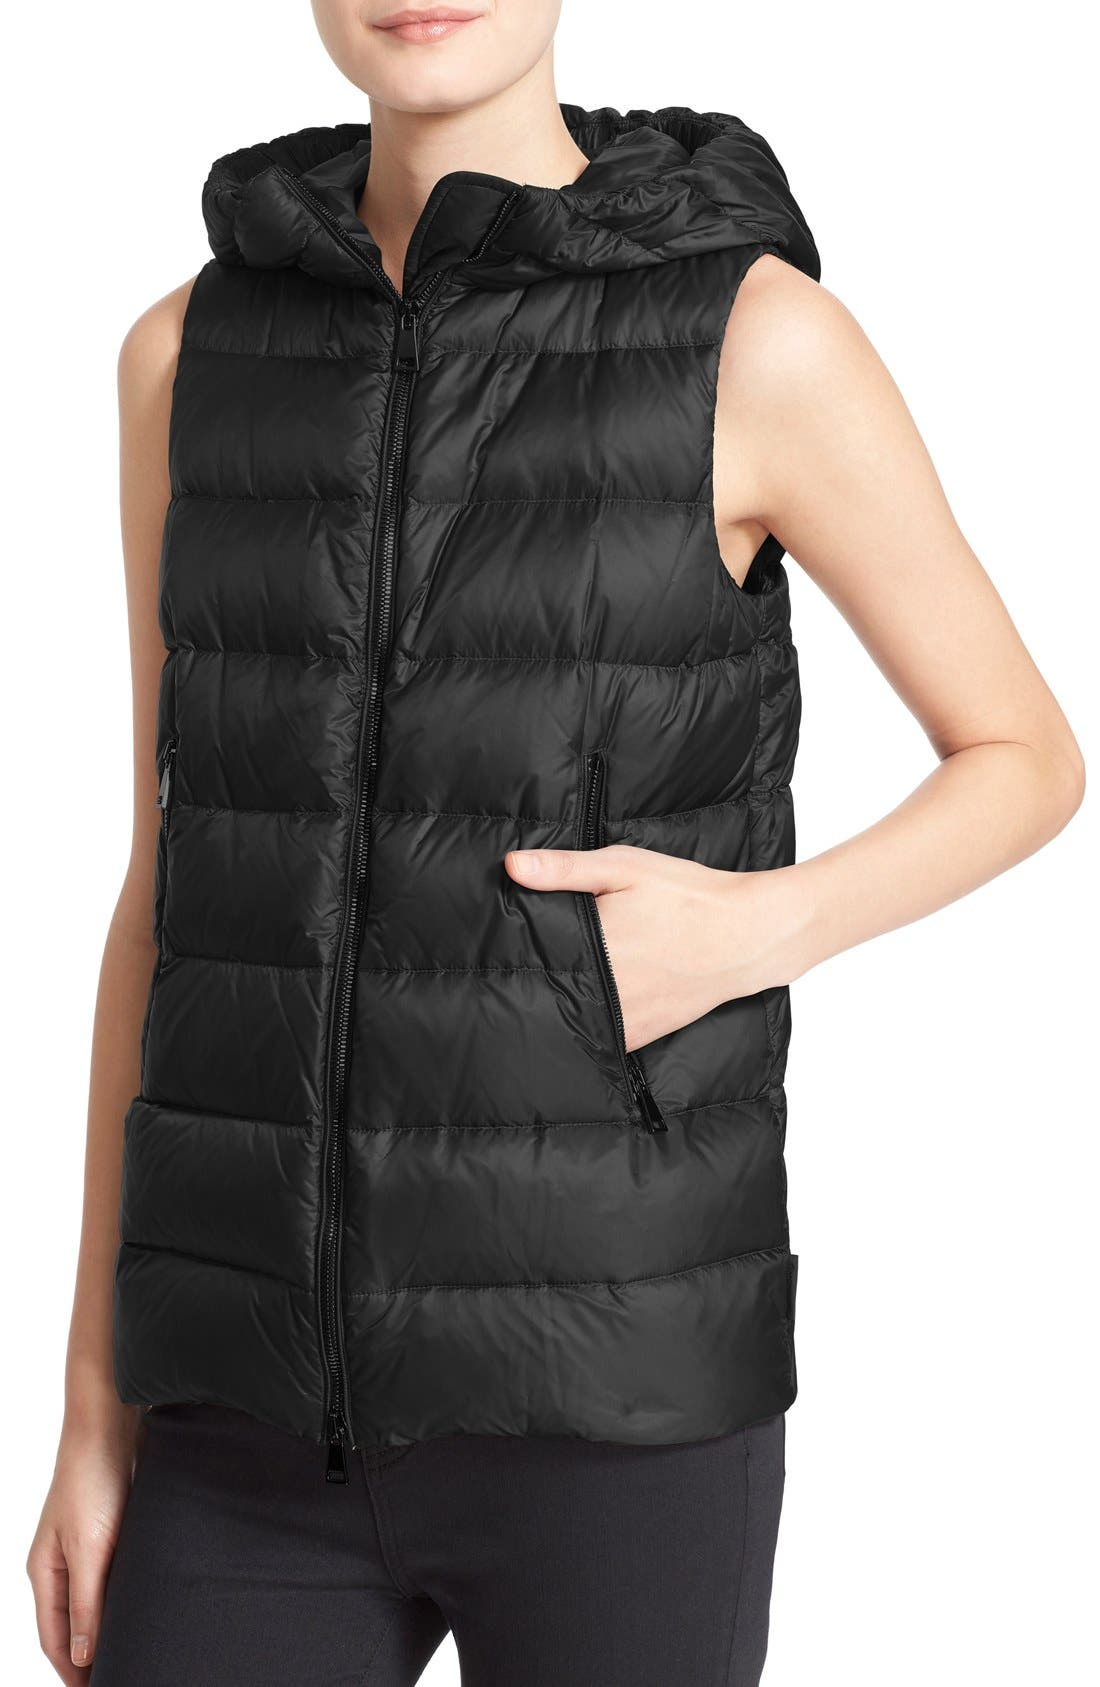 MONCLER,                             'Euphemia' Wool Blend Jacket with Removable Hooded Puffer Vest,                             Alternate thumbnail 2, color,                             001